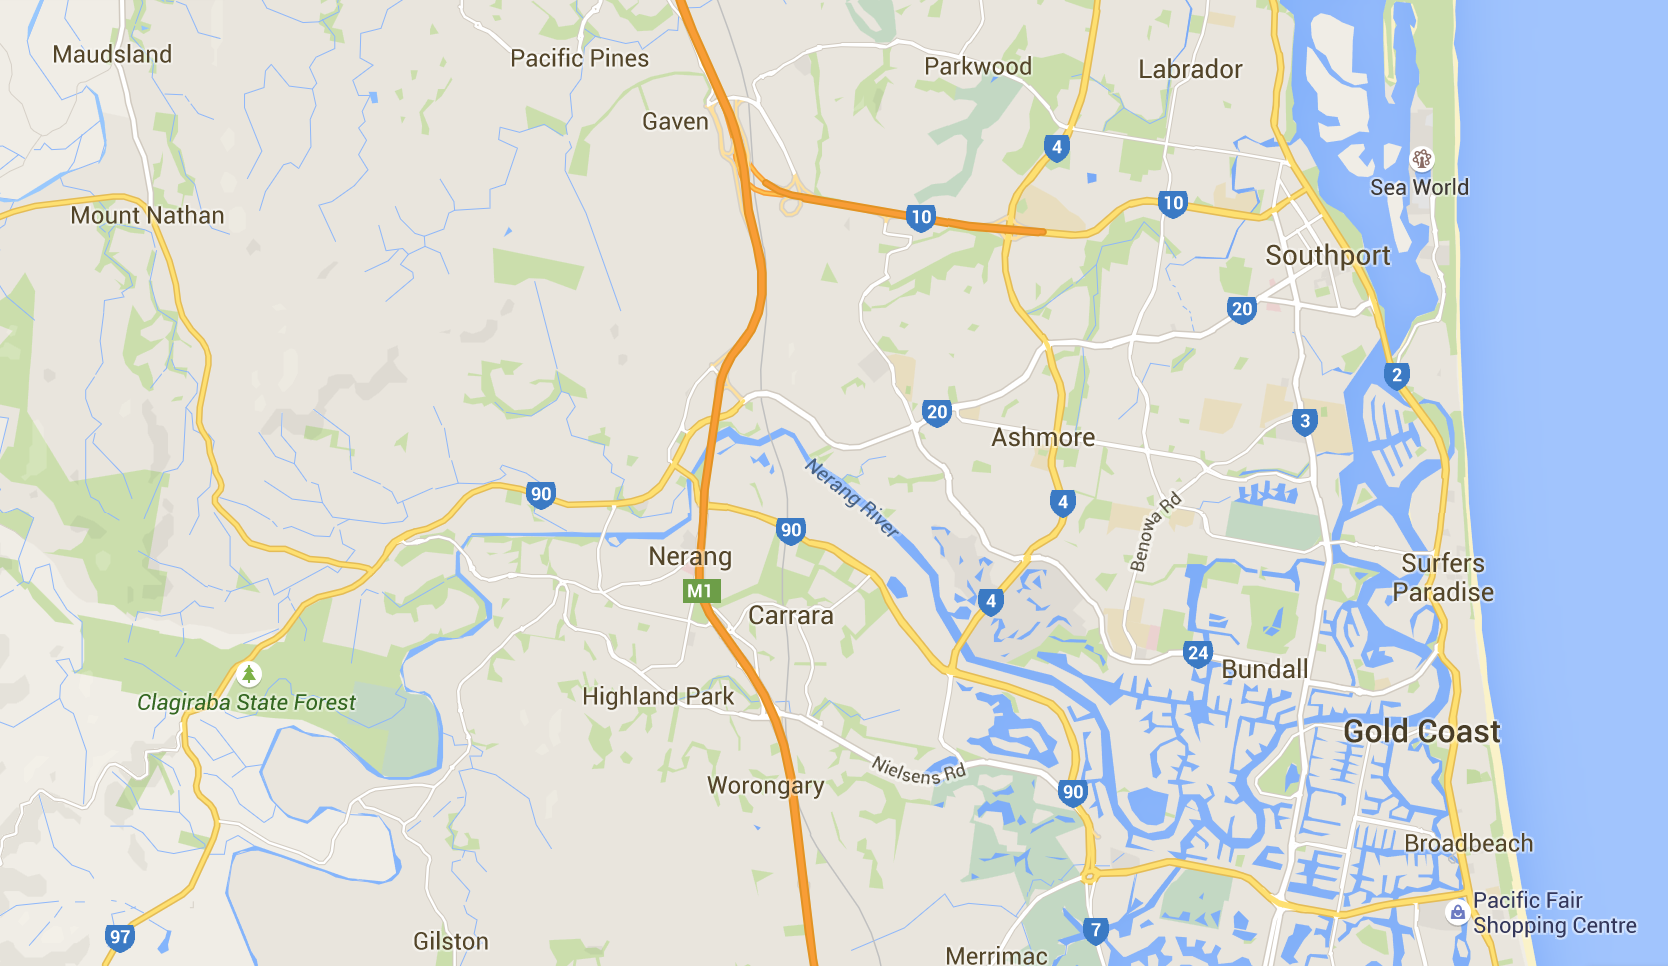 Where do you need your lawn mowed in Nerang? Image credit: Google Maps 2015